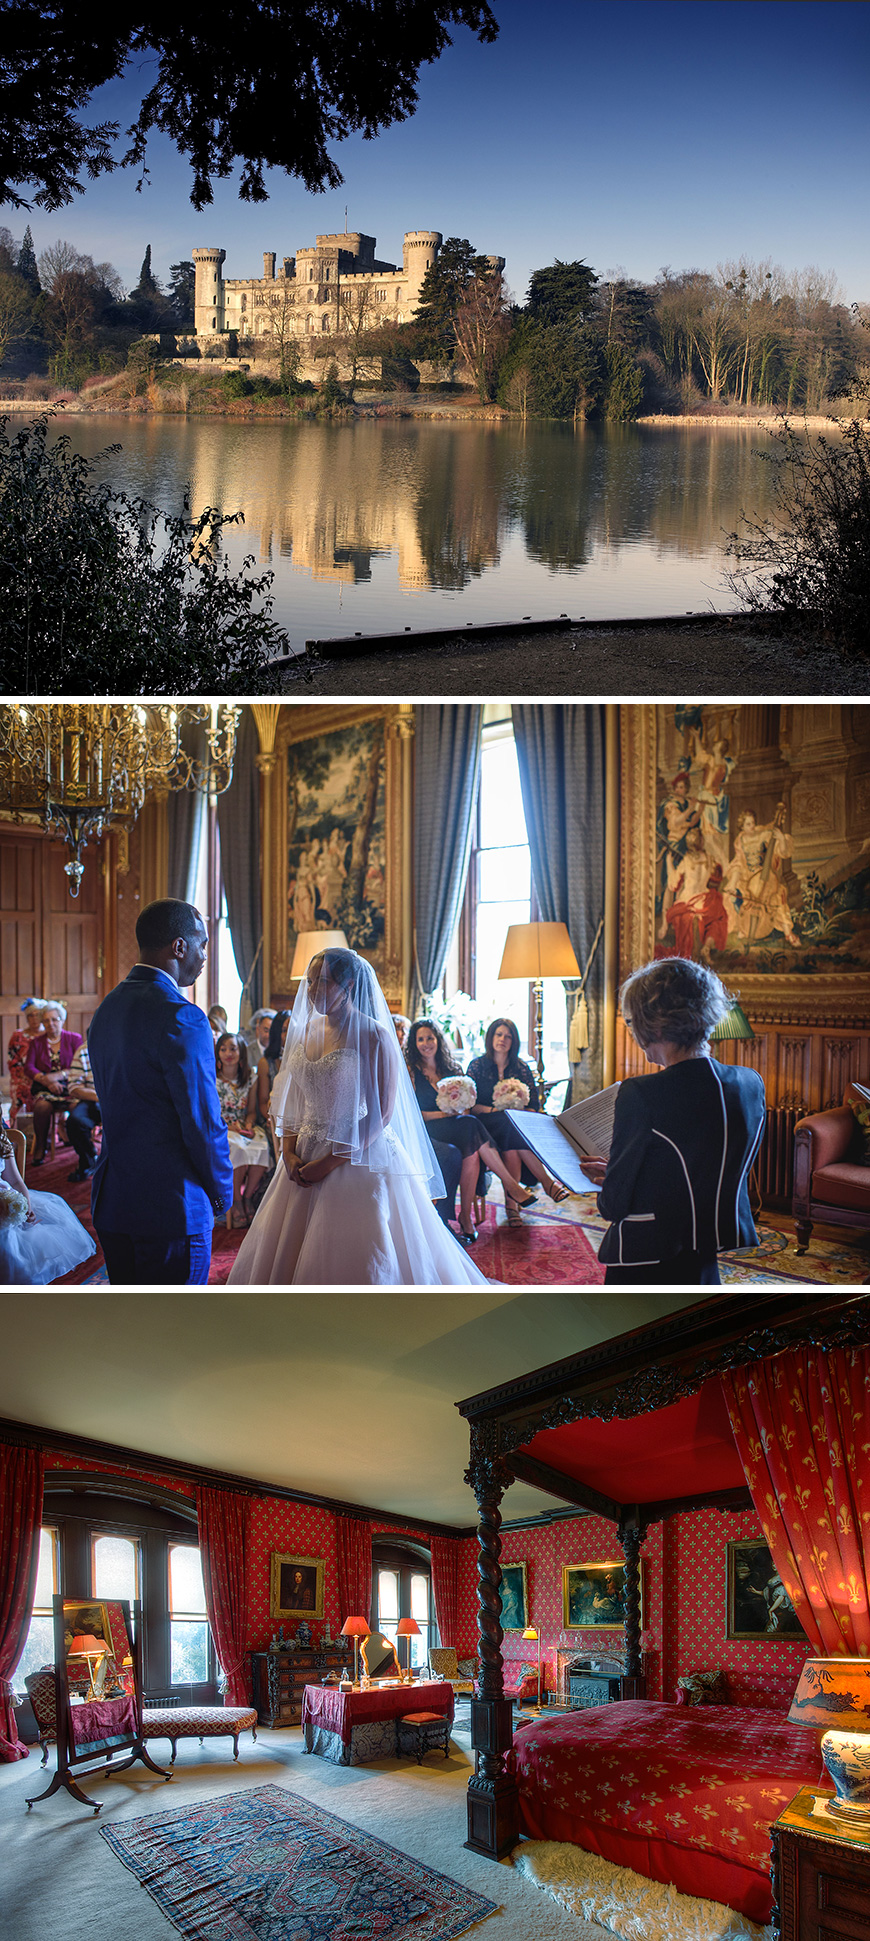 Beauty and the beast themed wedding ideas - Eastnor Castle | CHWV